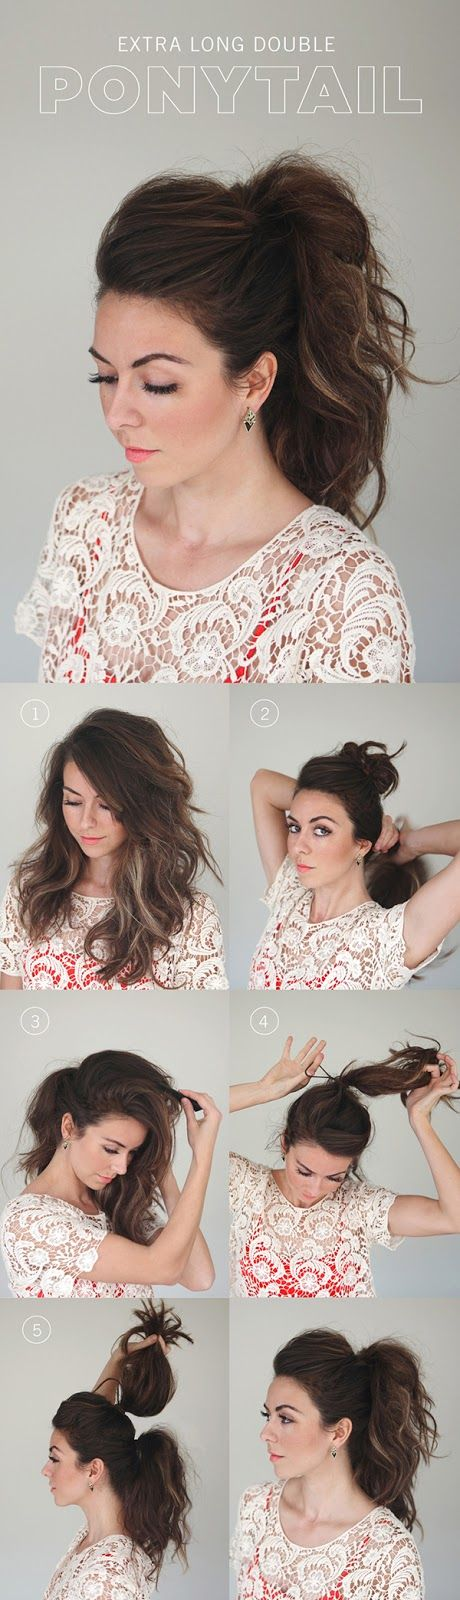 8 Messy Ponytail Tutorials That Will Make You Look Stunning | Double Pony